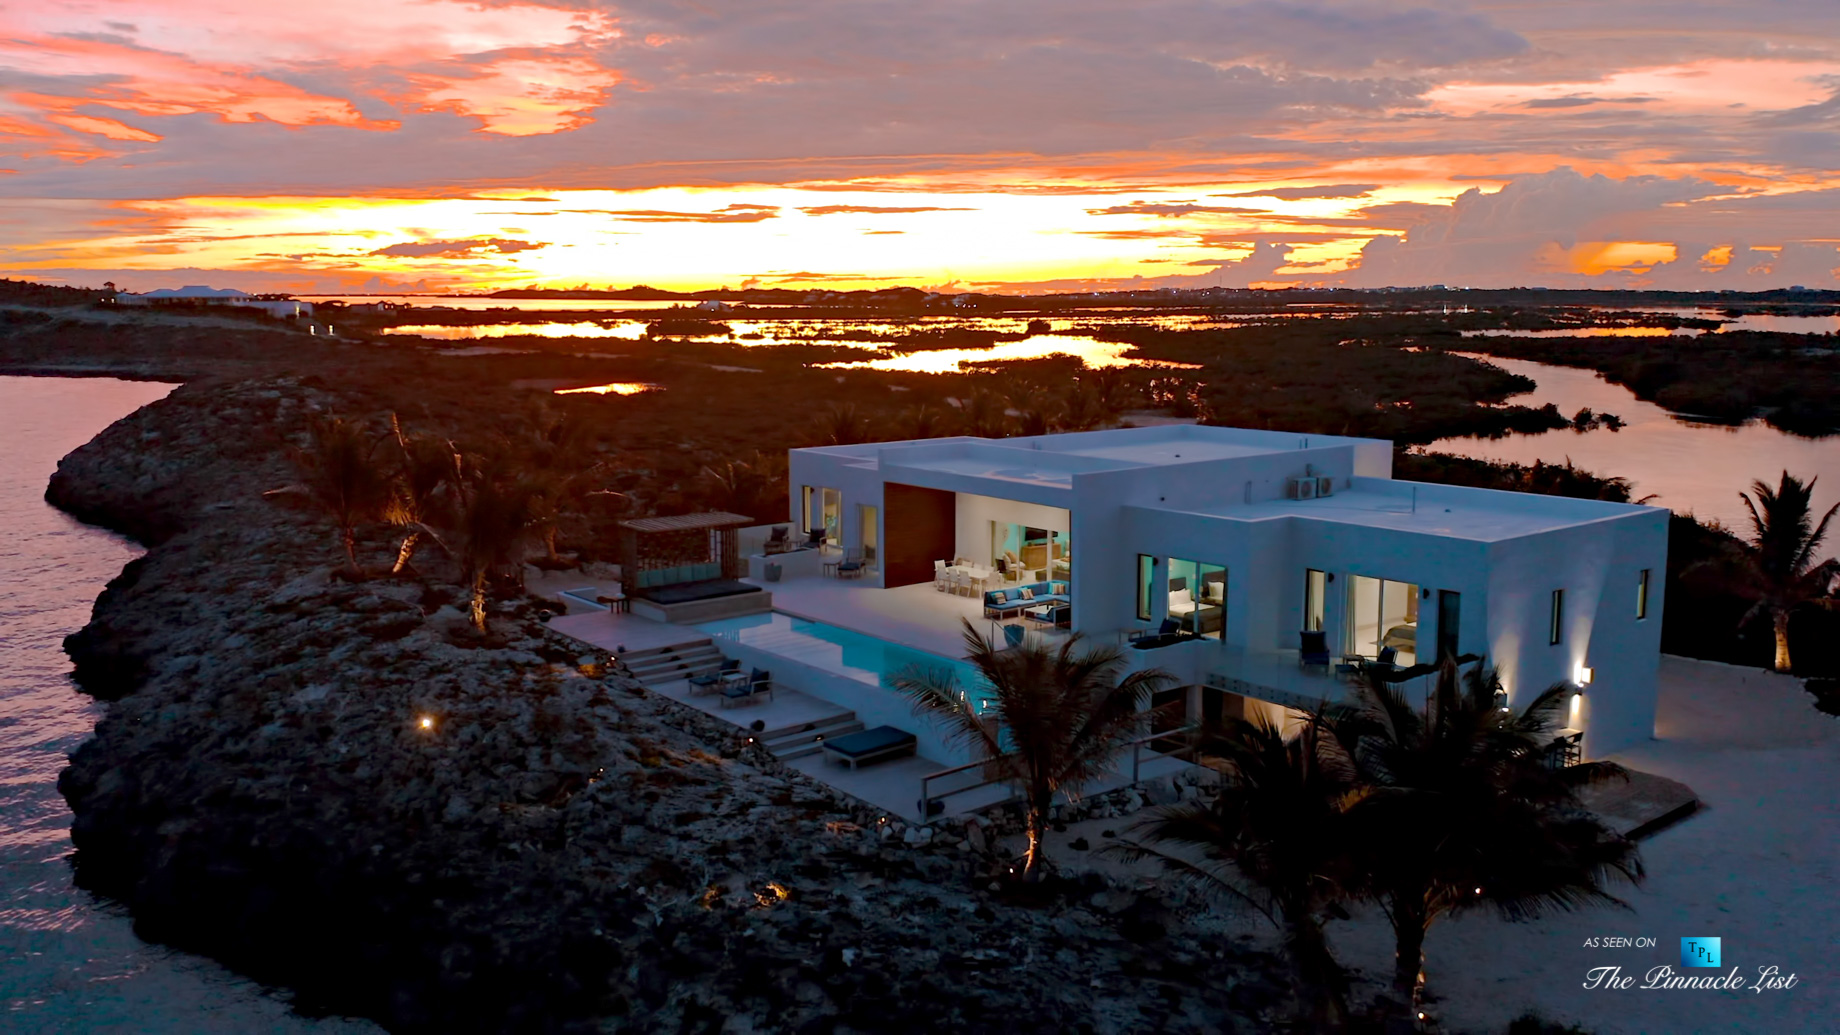 Tip of the Tail Villa - Providenciales, Turks and Caicos Islands - Aerial Caribbean Villa Oceanfront Sunset View - Luxury Real Estate - South Shore Peninsula Home